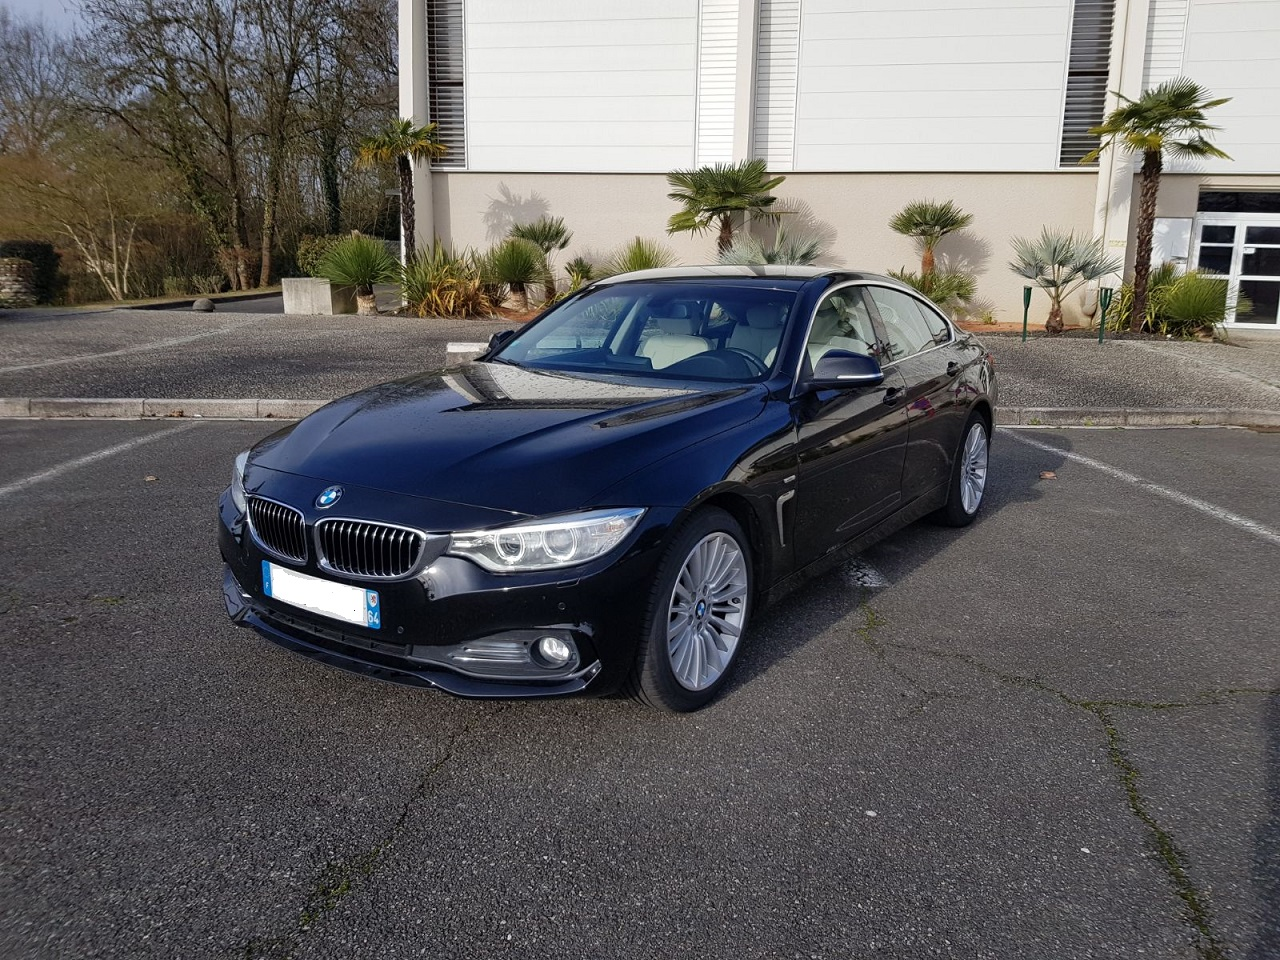 BMW 420D Grand Coupé 190 cv luxury